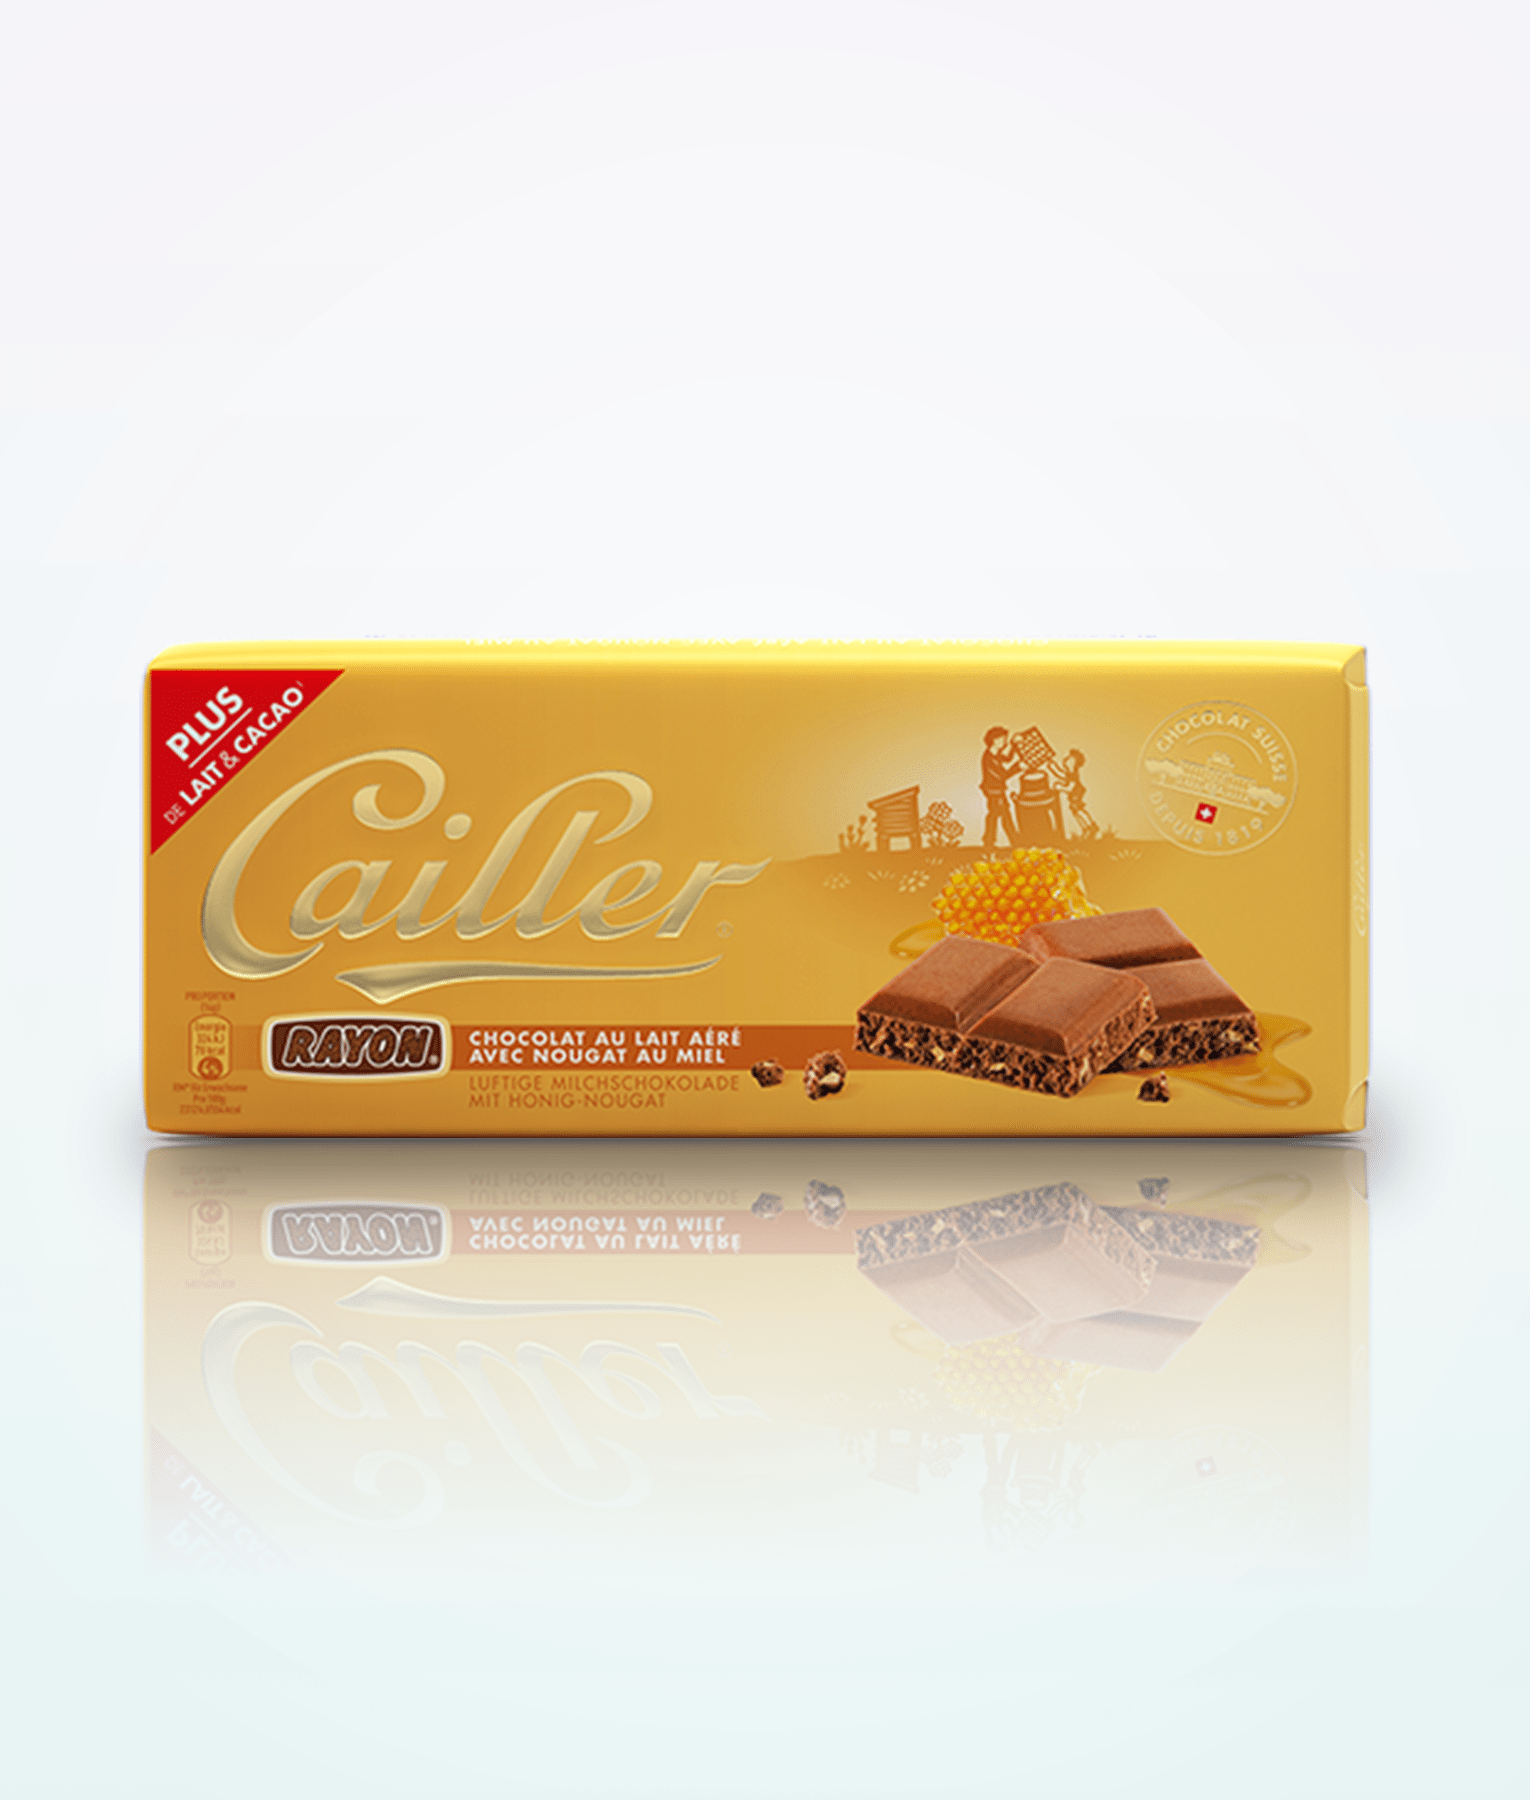 cailler-rayon-milk-honey-chocolate